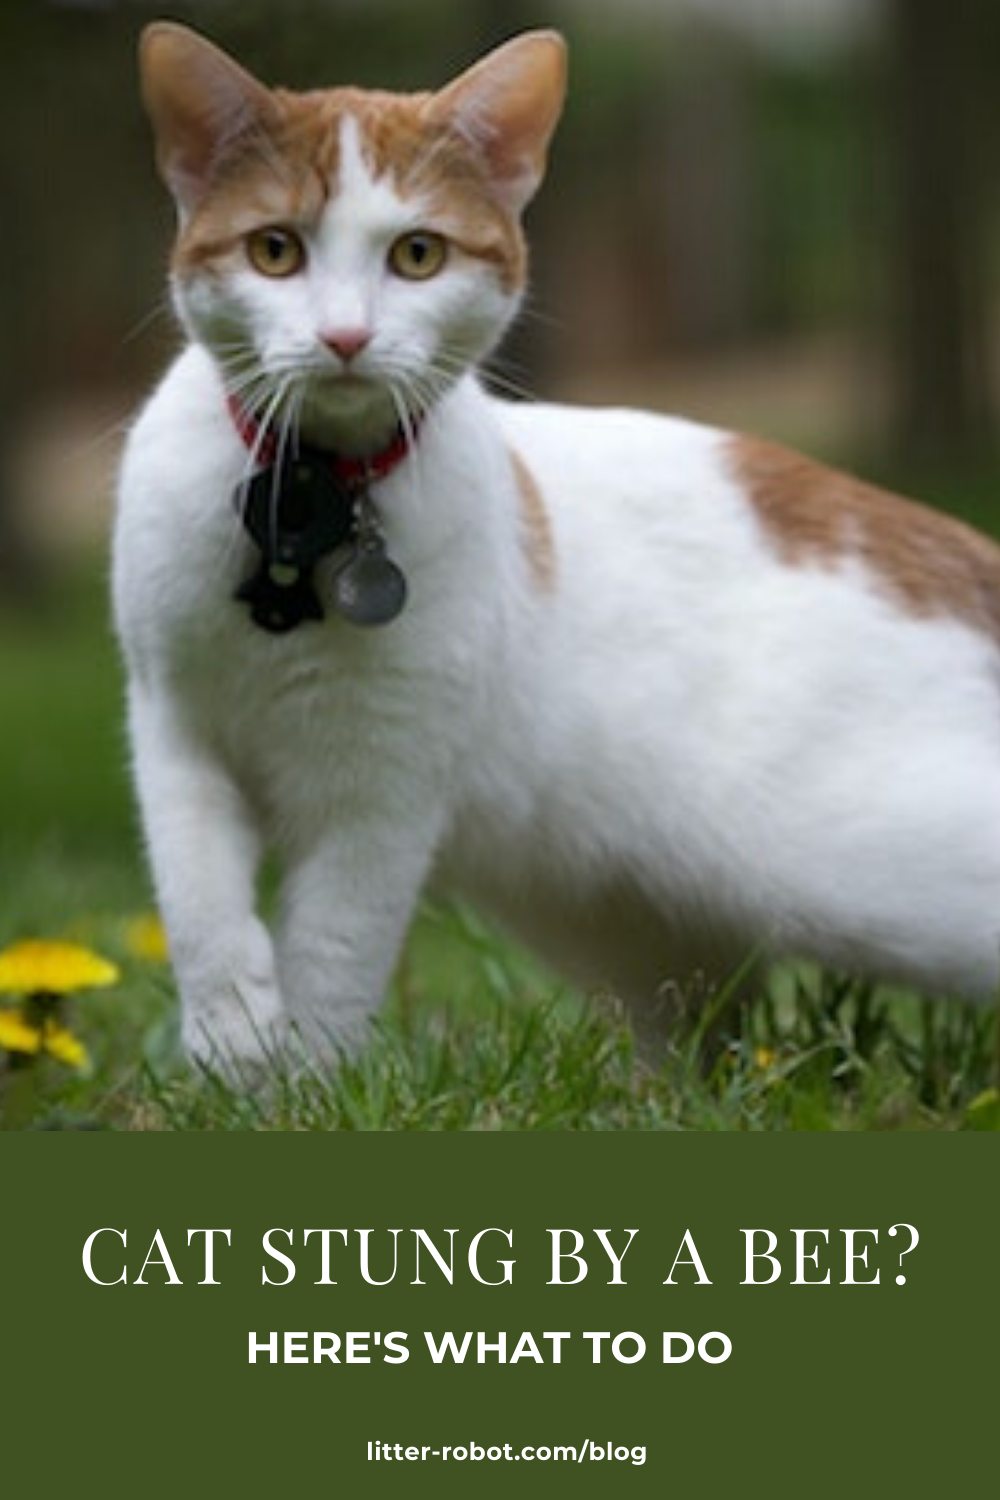 Cat Stung by a Bee? Here's What To Do LitterRobot Blog